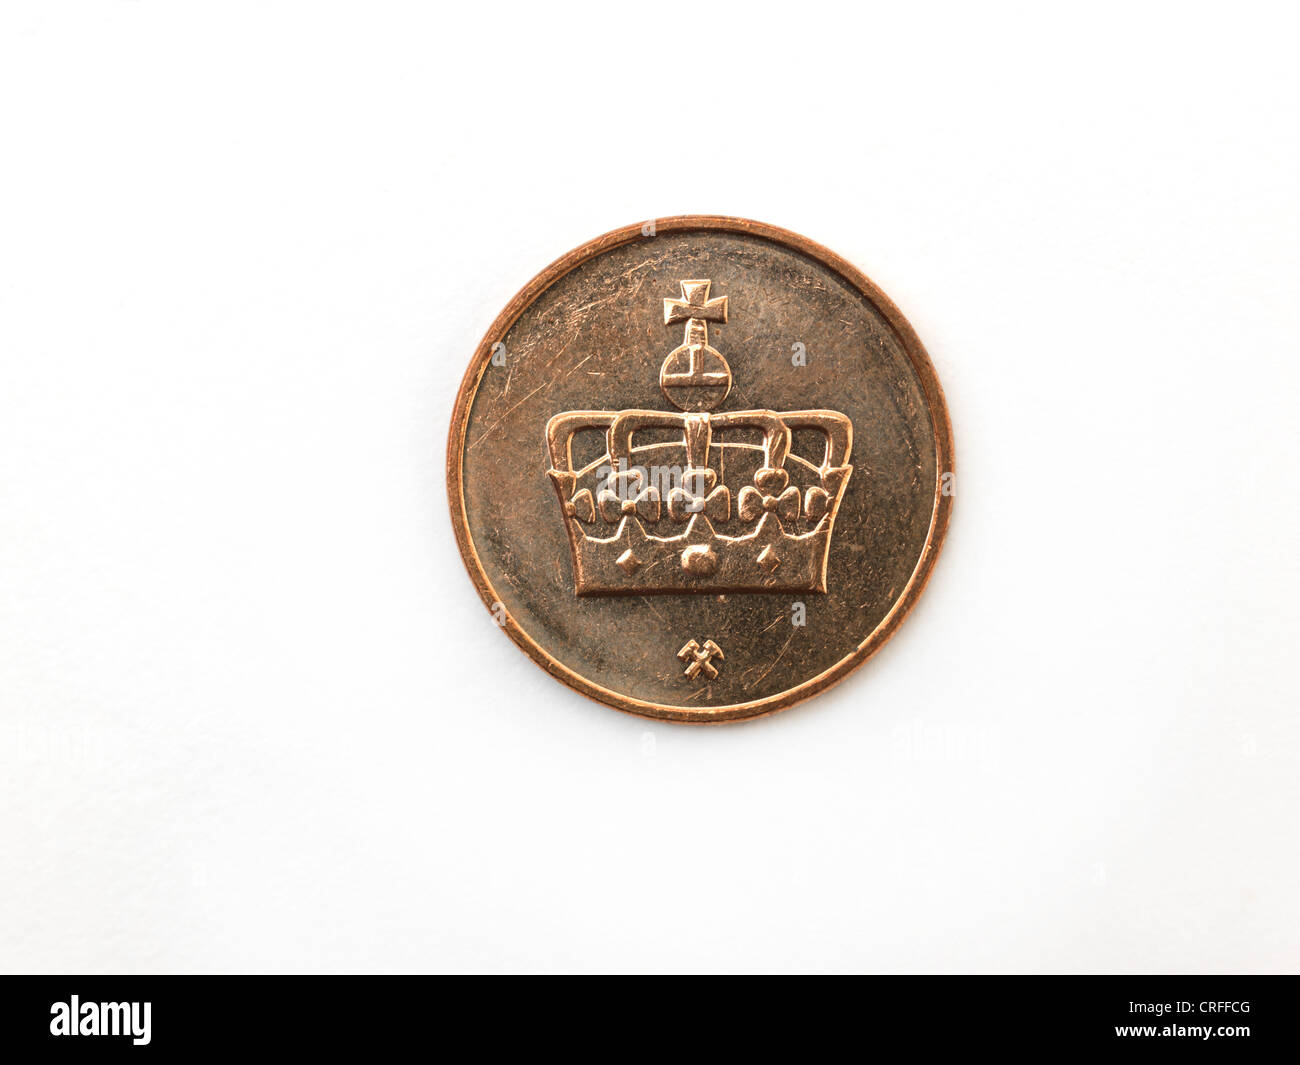 Norwegian Coin 50 Ore Depicting Crown Of Harald V - Stock Image